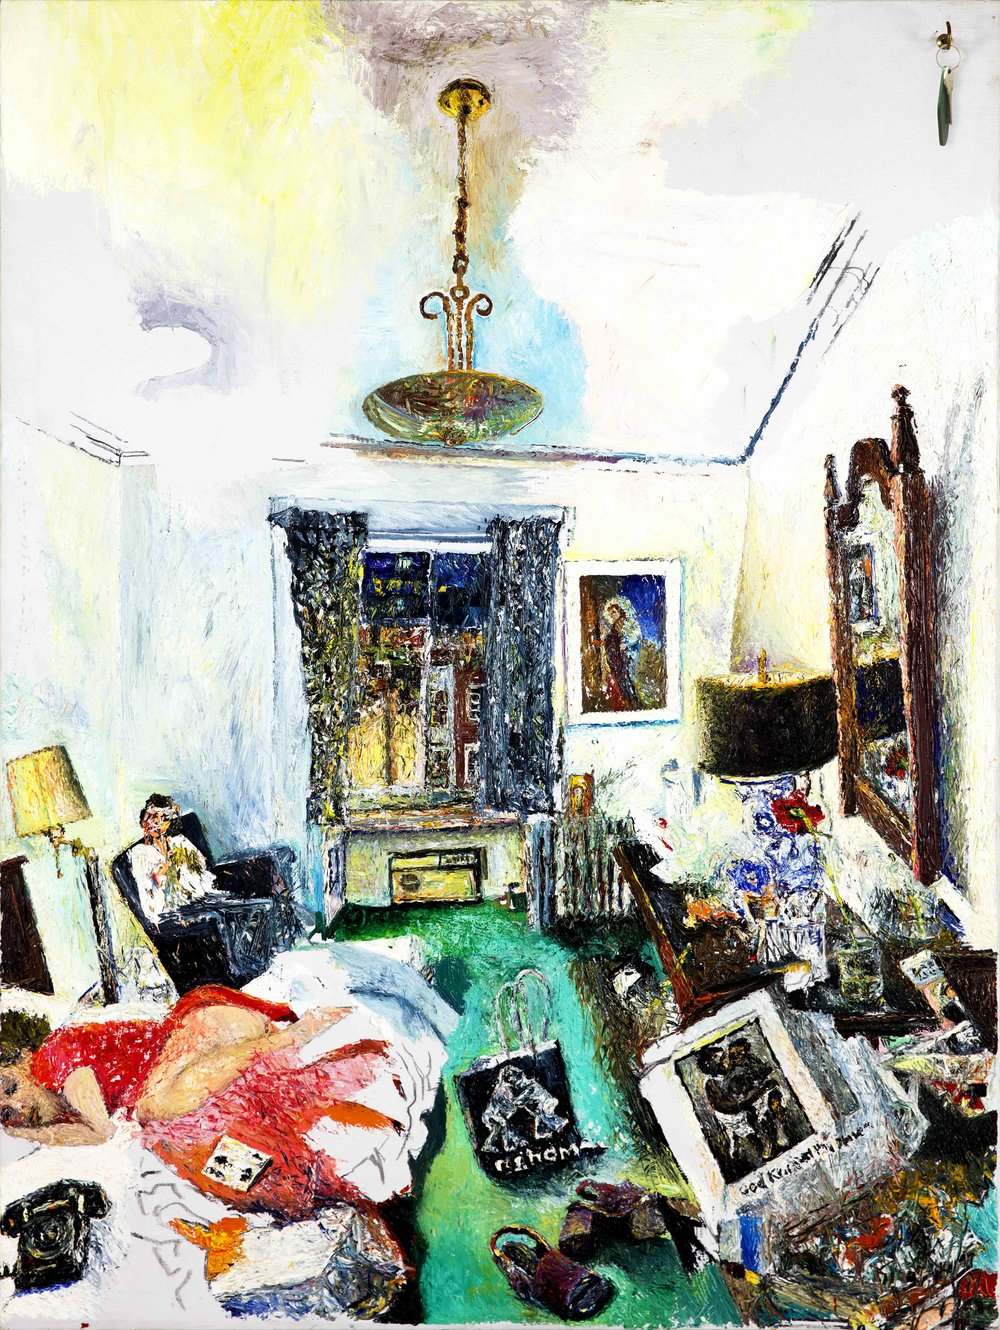 Malcolm Morley   Room at Chelsea/Chelsea Hotel  1972 Oil on canvas 122 x 90 cm